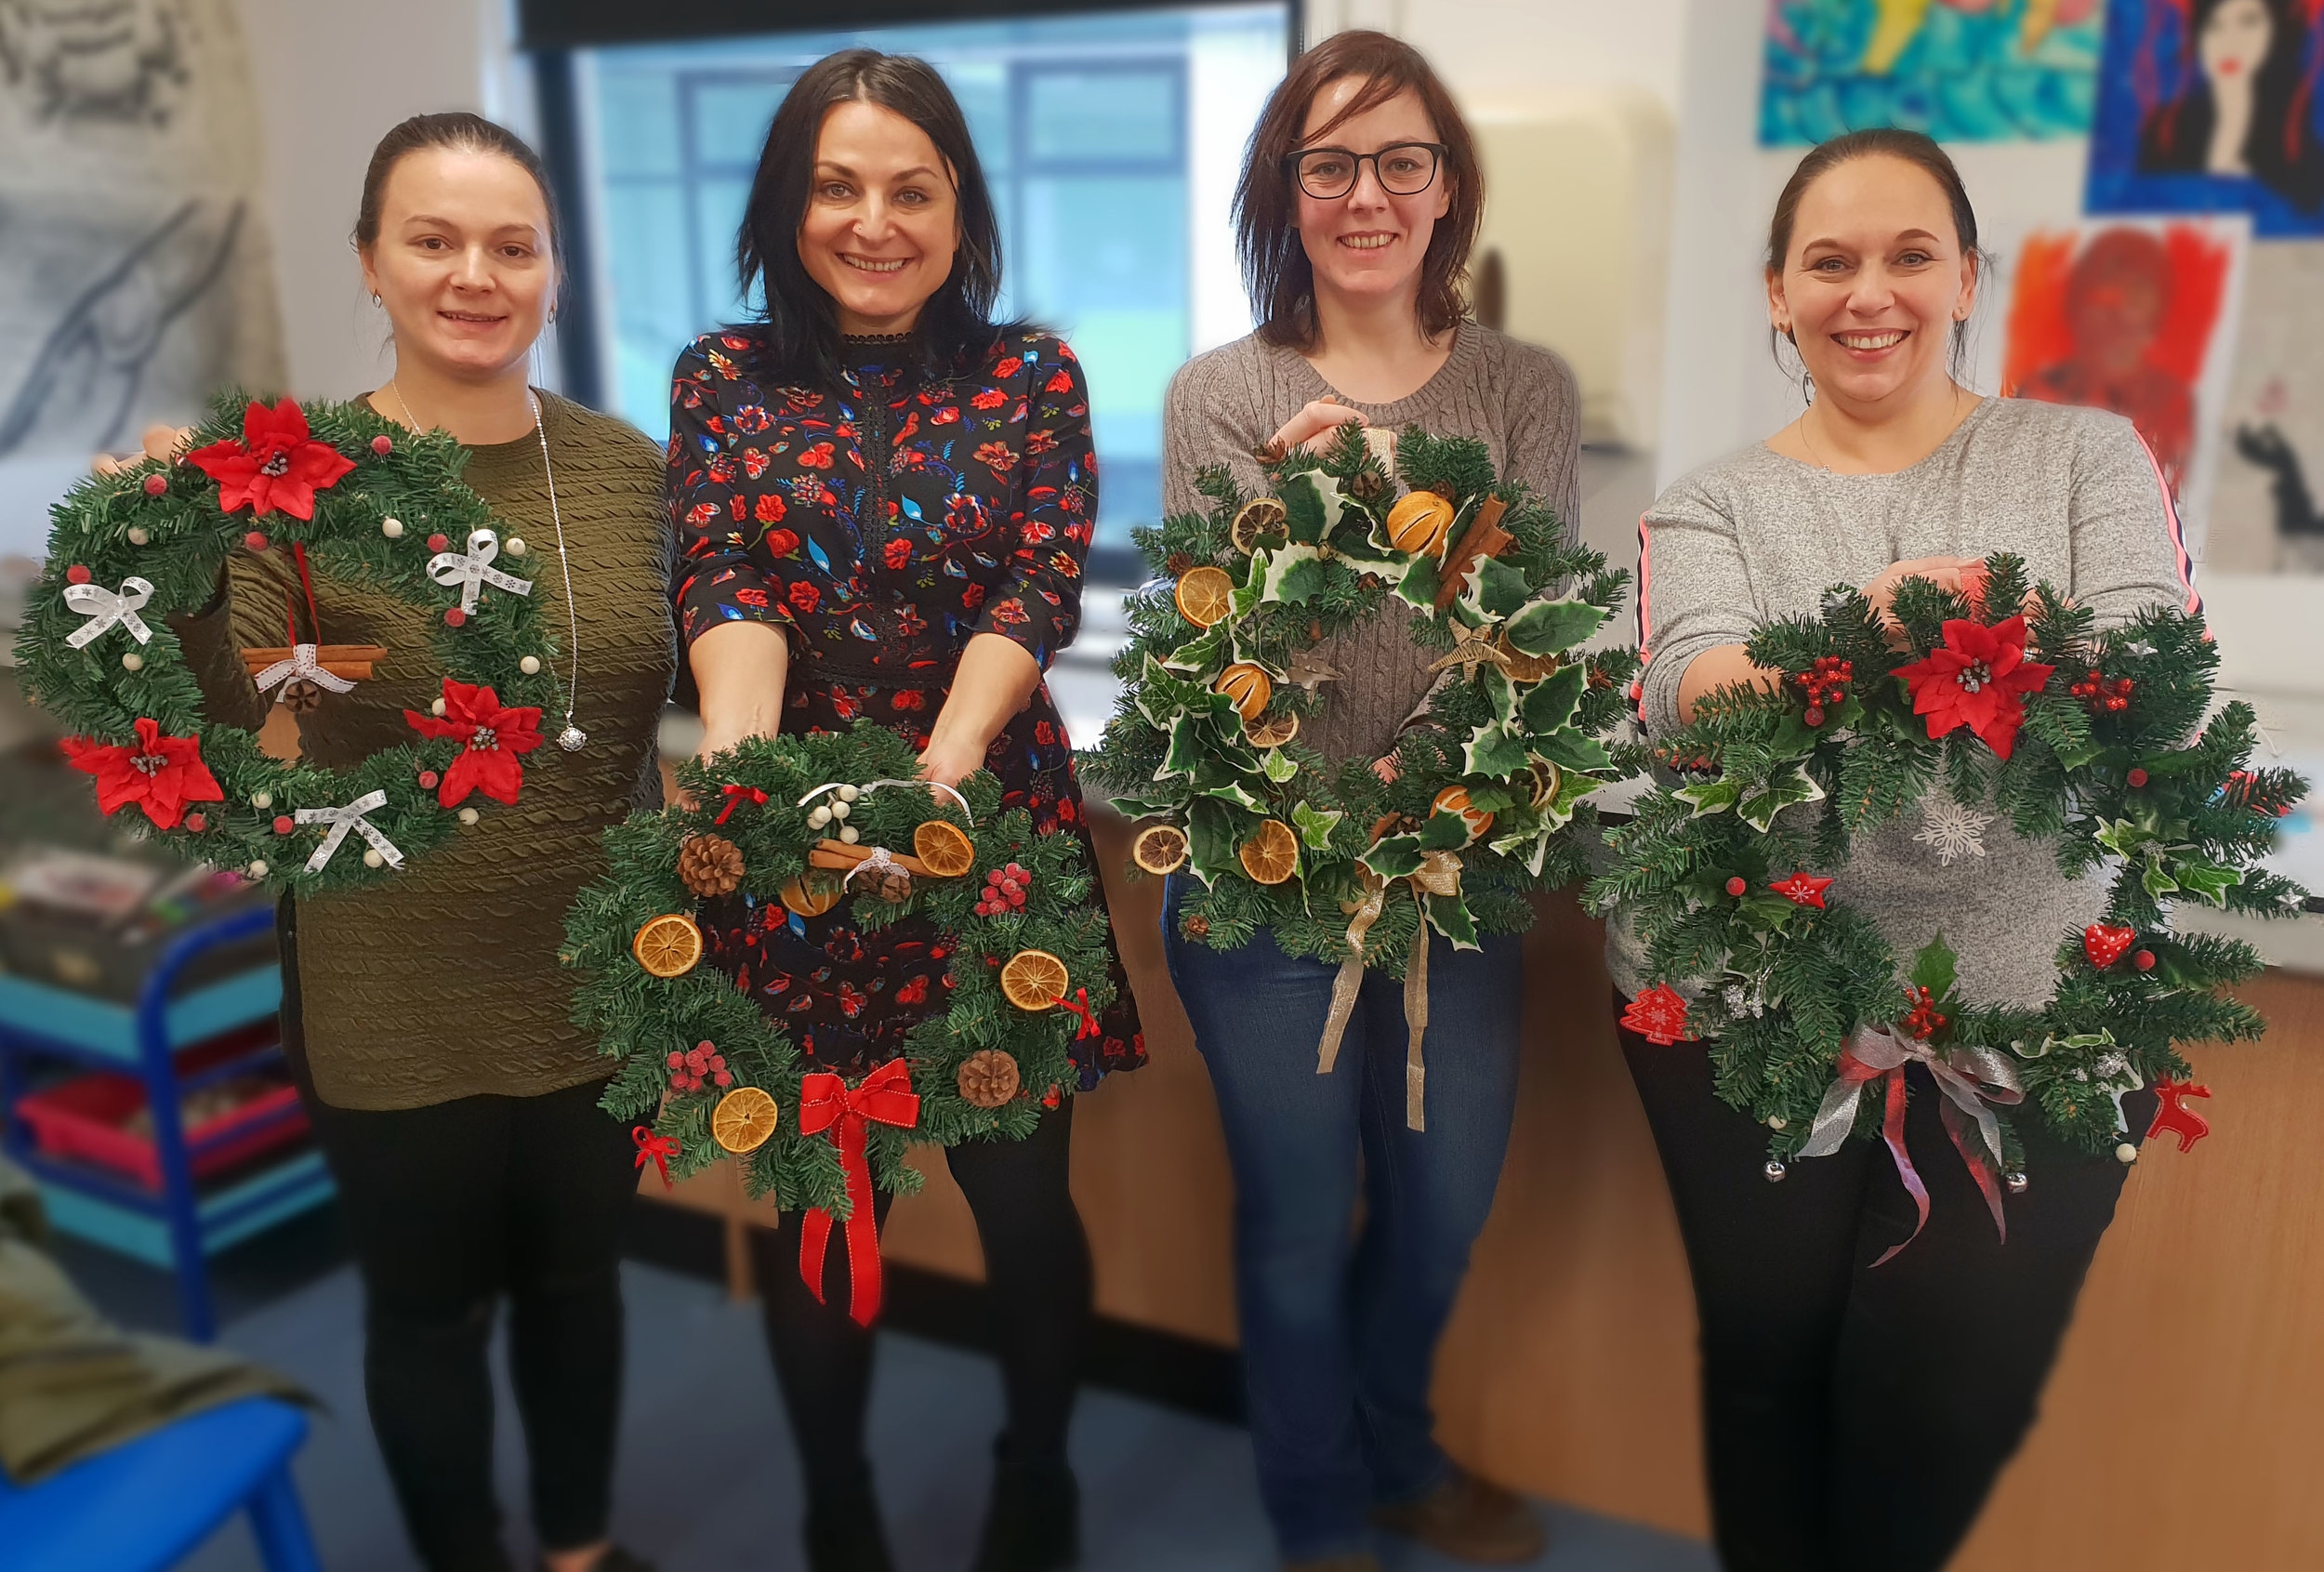 Christmas Wreath Making Team Activity Mobile.jpg